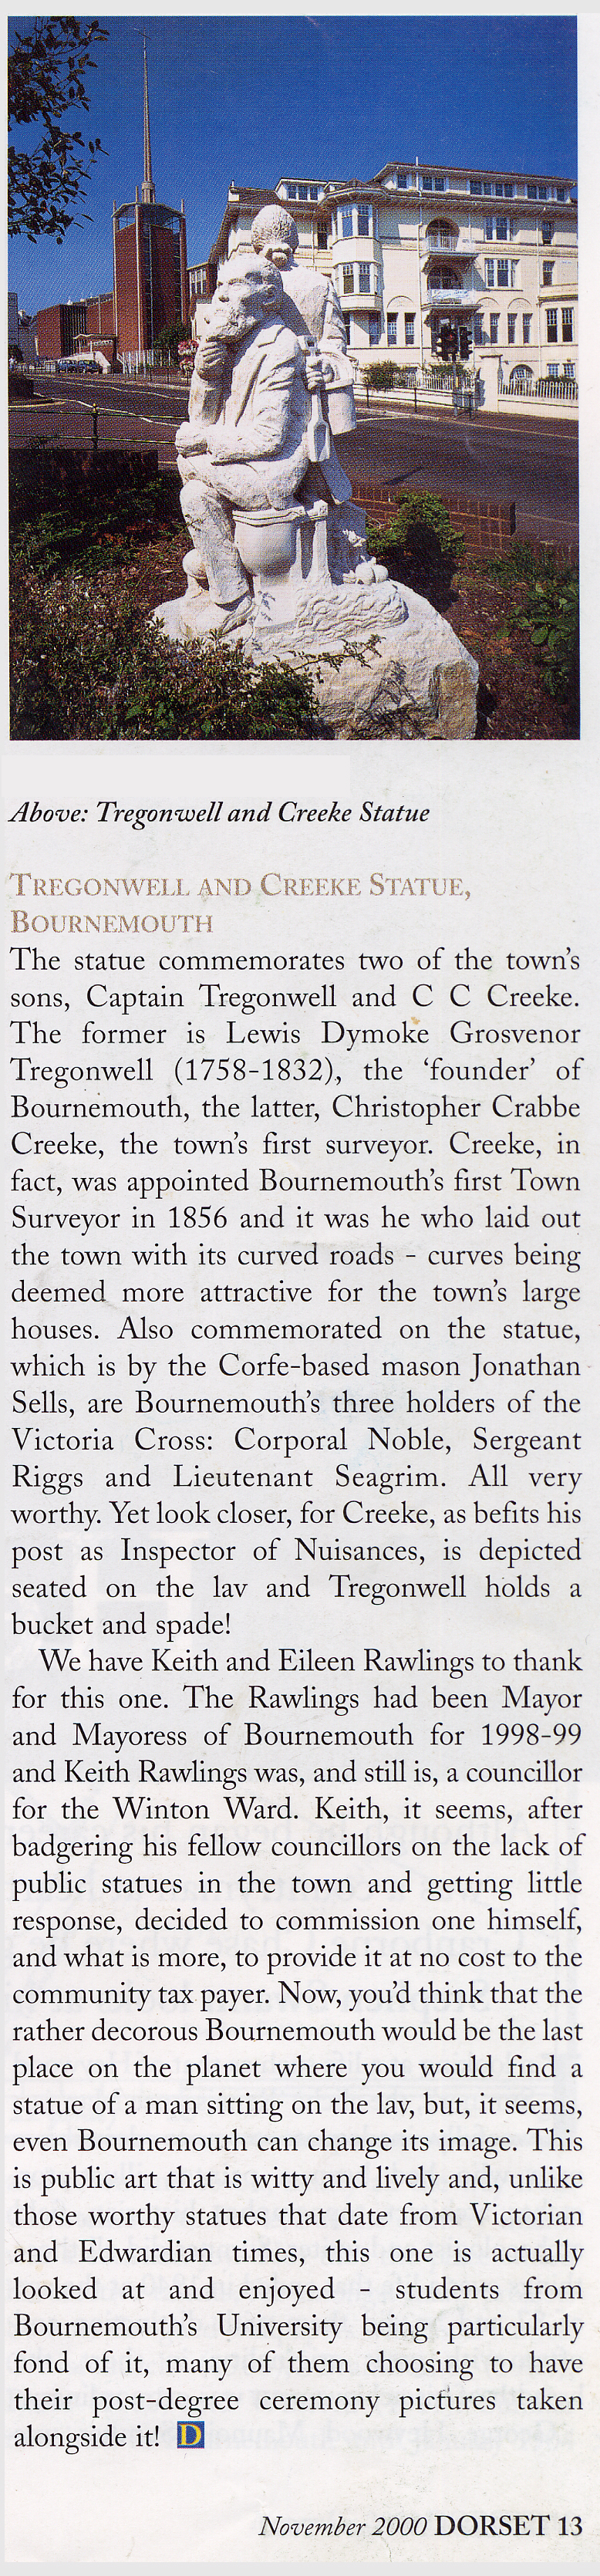 Press cutting about the Tregonwell/Creeke statue.